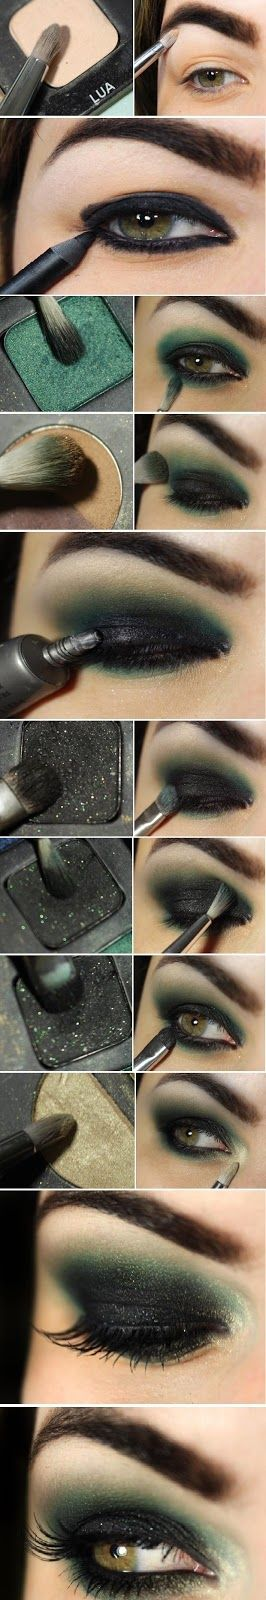 Maquillage Yeux  How to : Easy Sexy Black & Green Mak